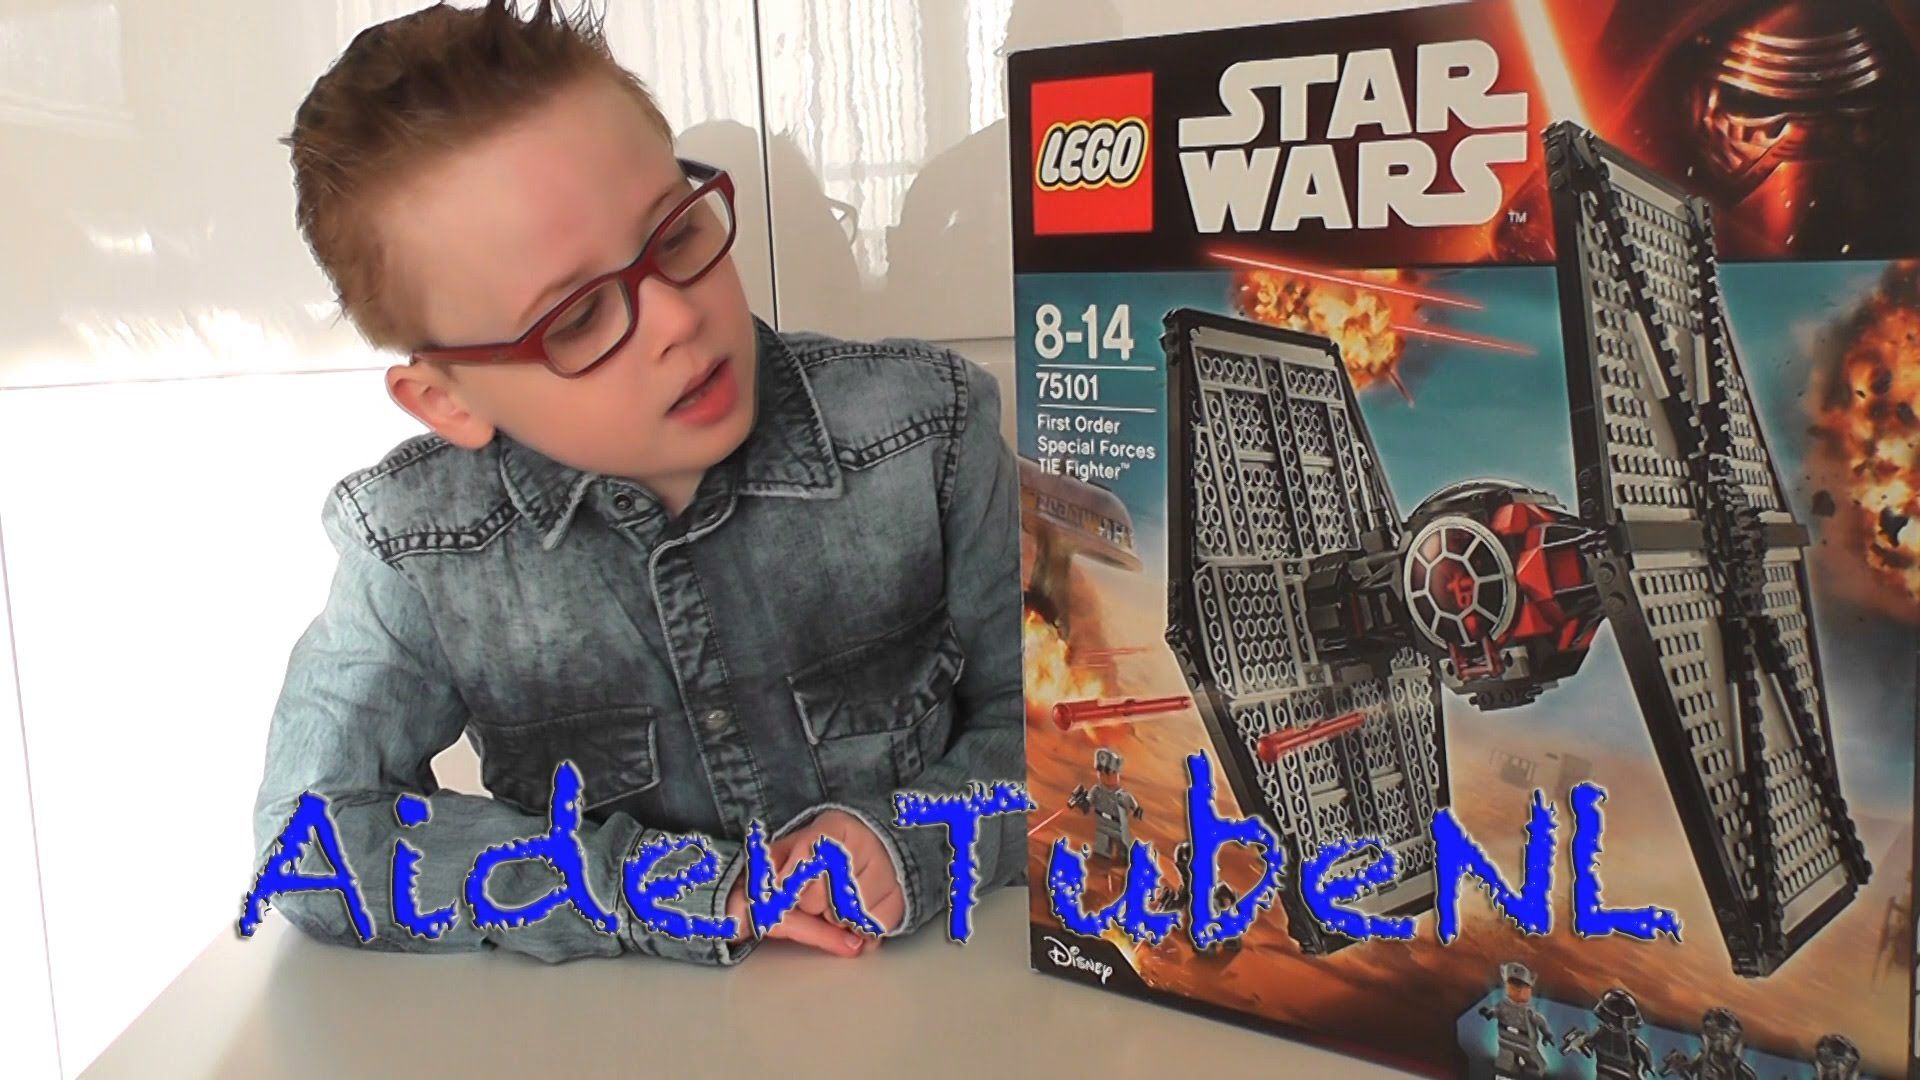 Review: Lego Star Wars First Order Special Forces TIE fighter 75101